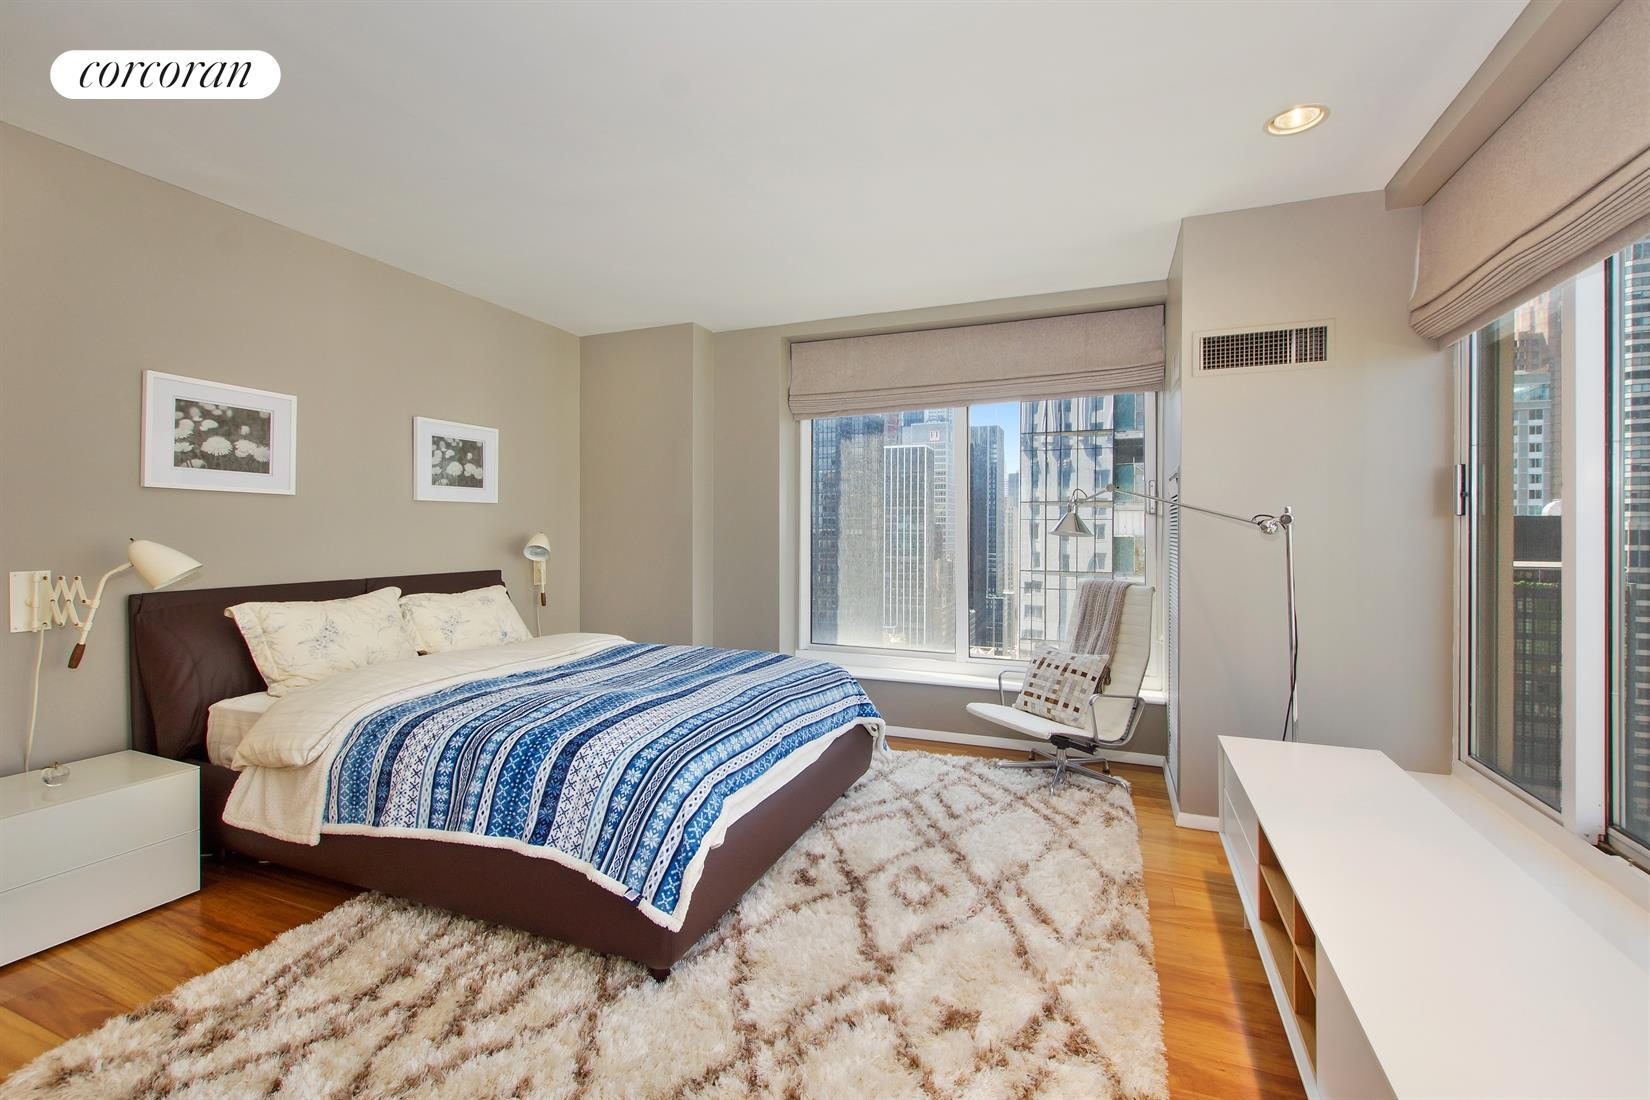 106 Central Park South, 32B, Bedroom